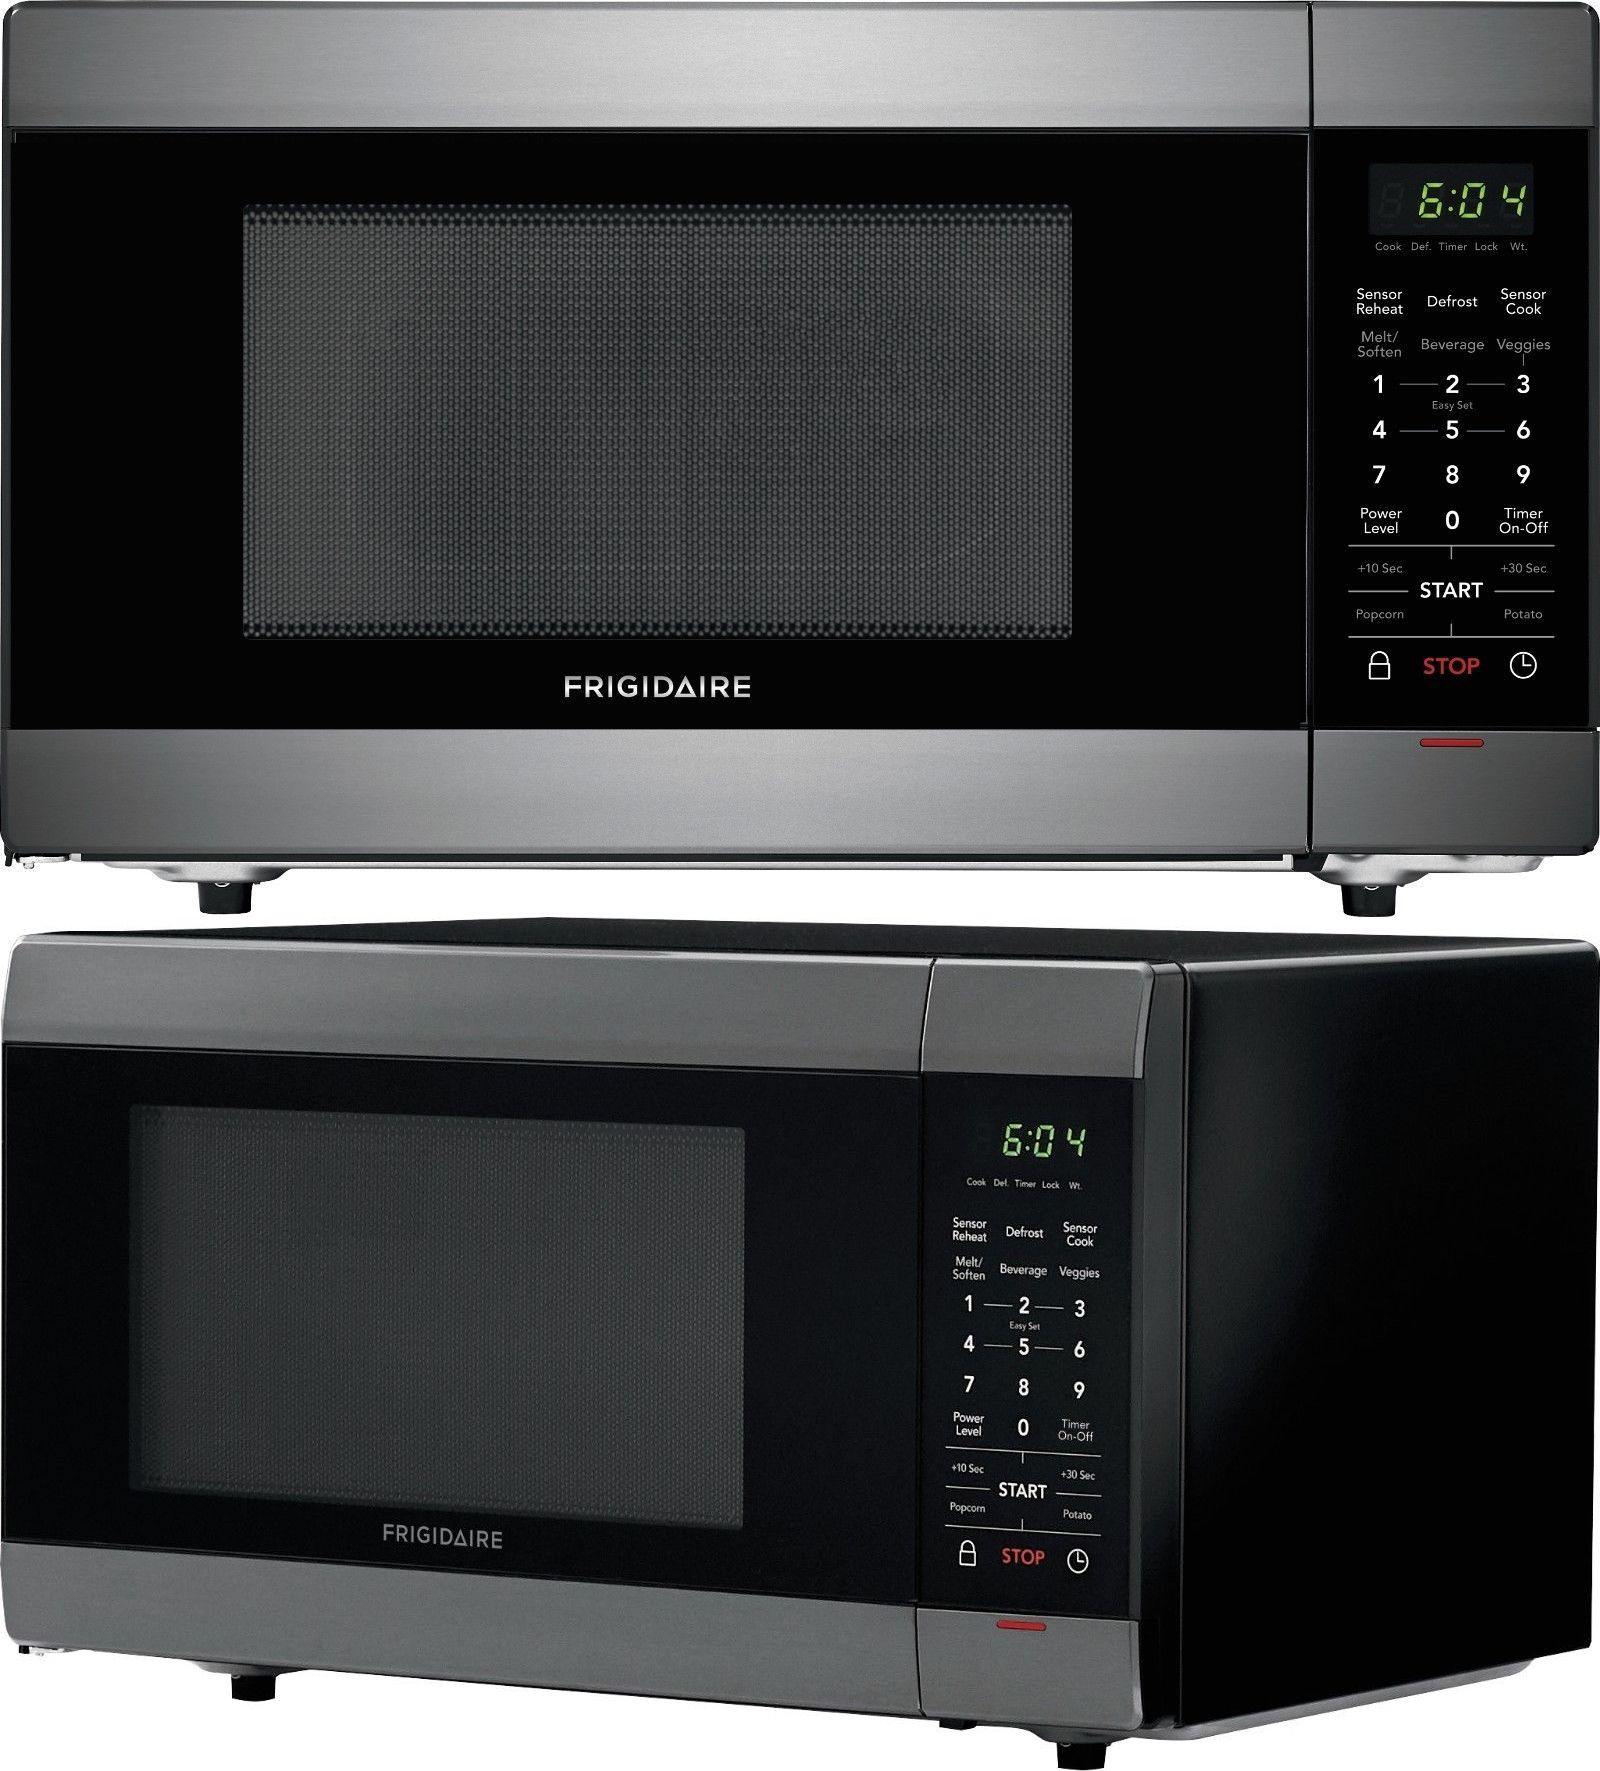 Microwave Ovens 150140 Frigidaire 1 4 Cu Ft Black Stainless Steel